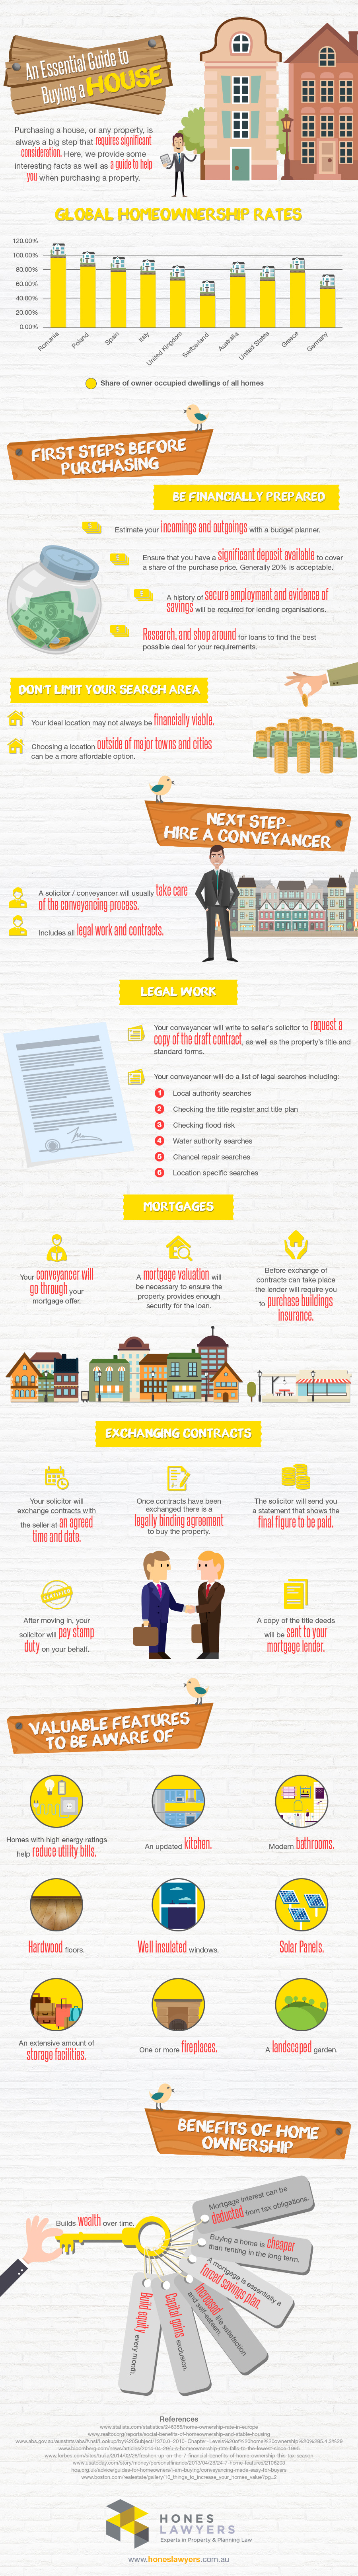 An Essential Guide to Buying a House